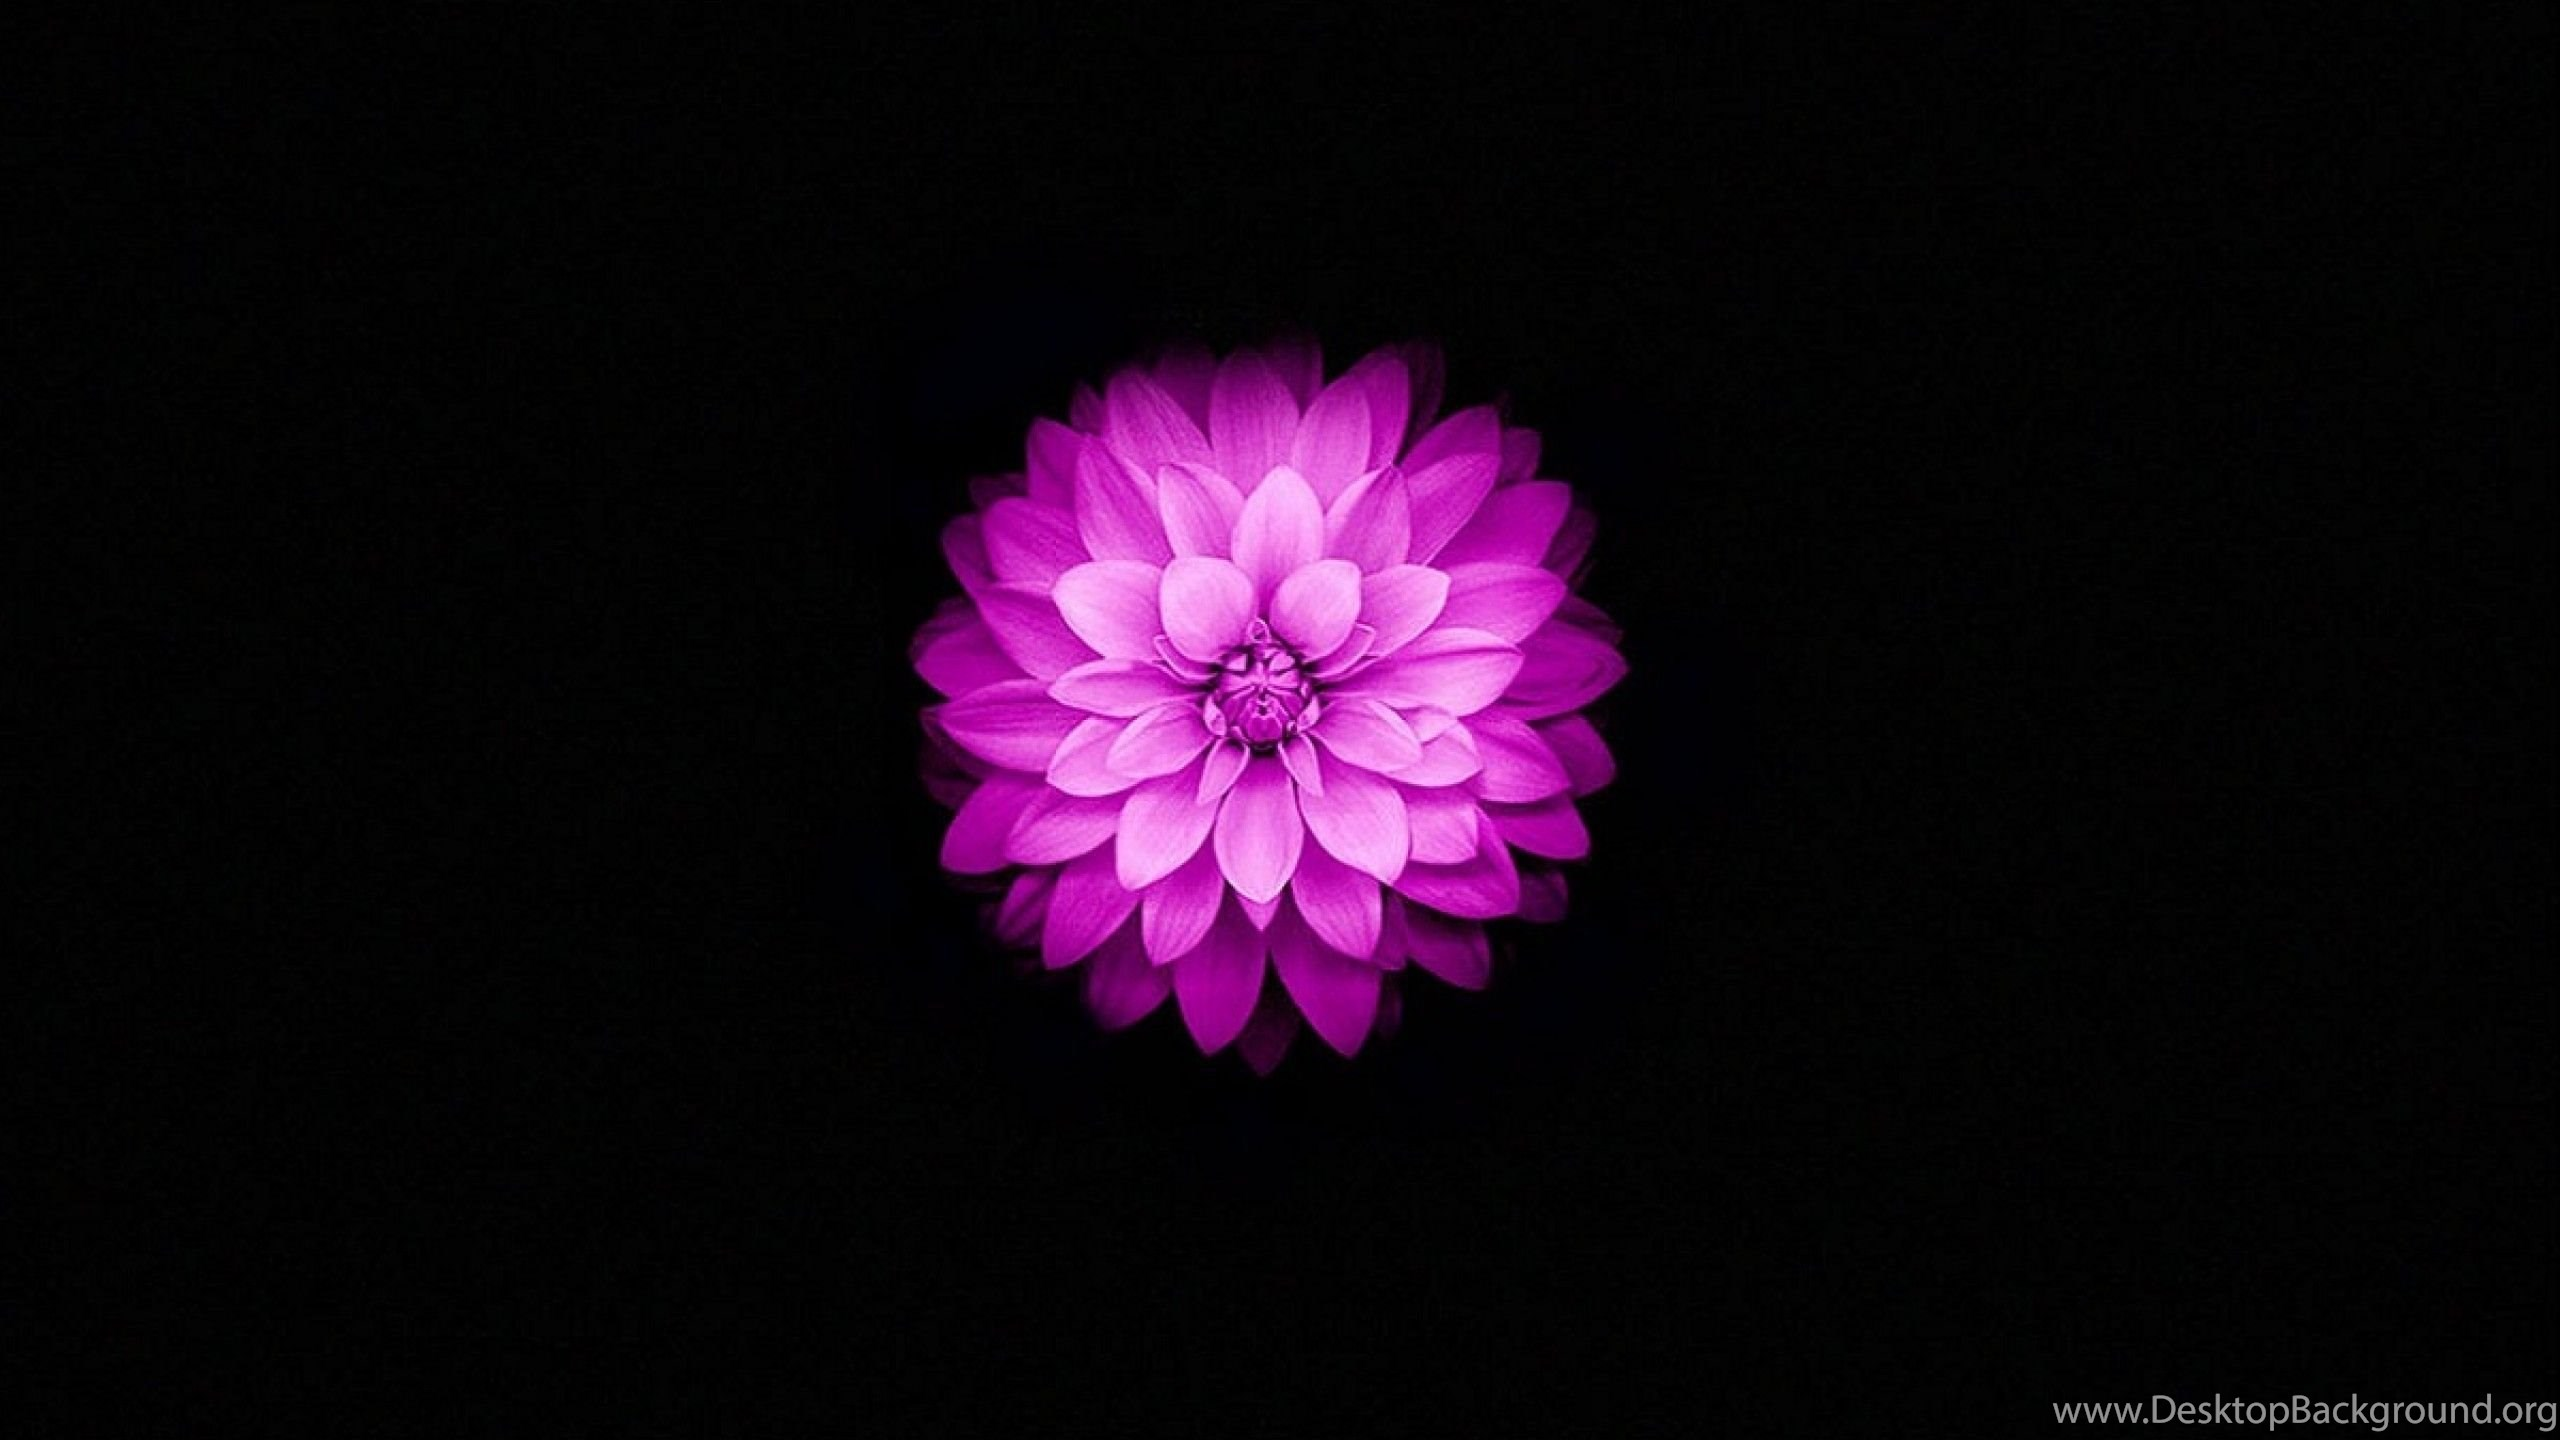 Purple Iphone 6 Wallpaper 14276 Wallpaper: Apple IPhone 6 And IPhone 6s Wallpapers With Purple Lotus